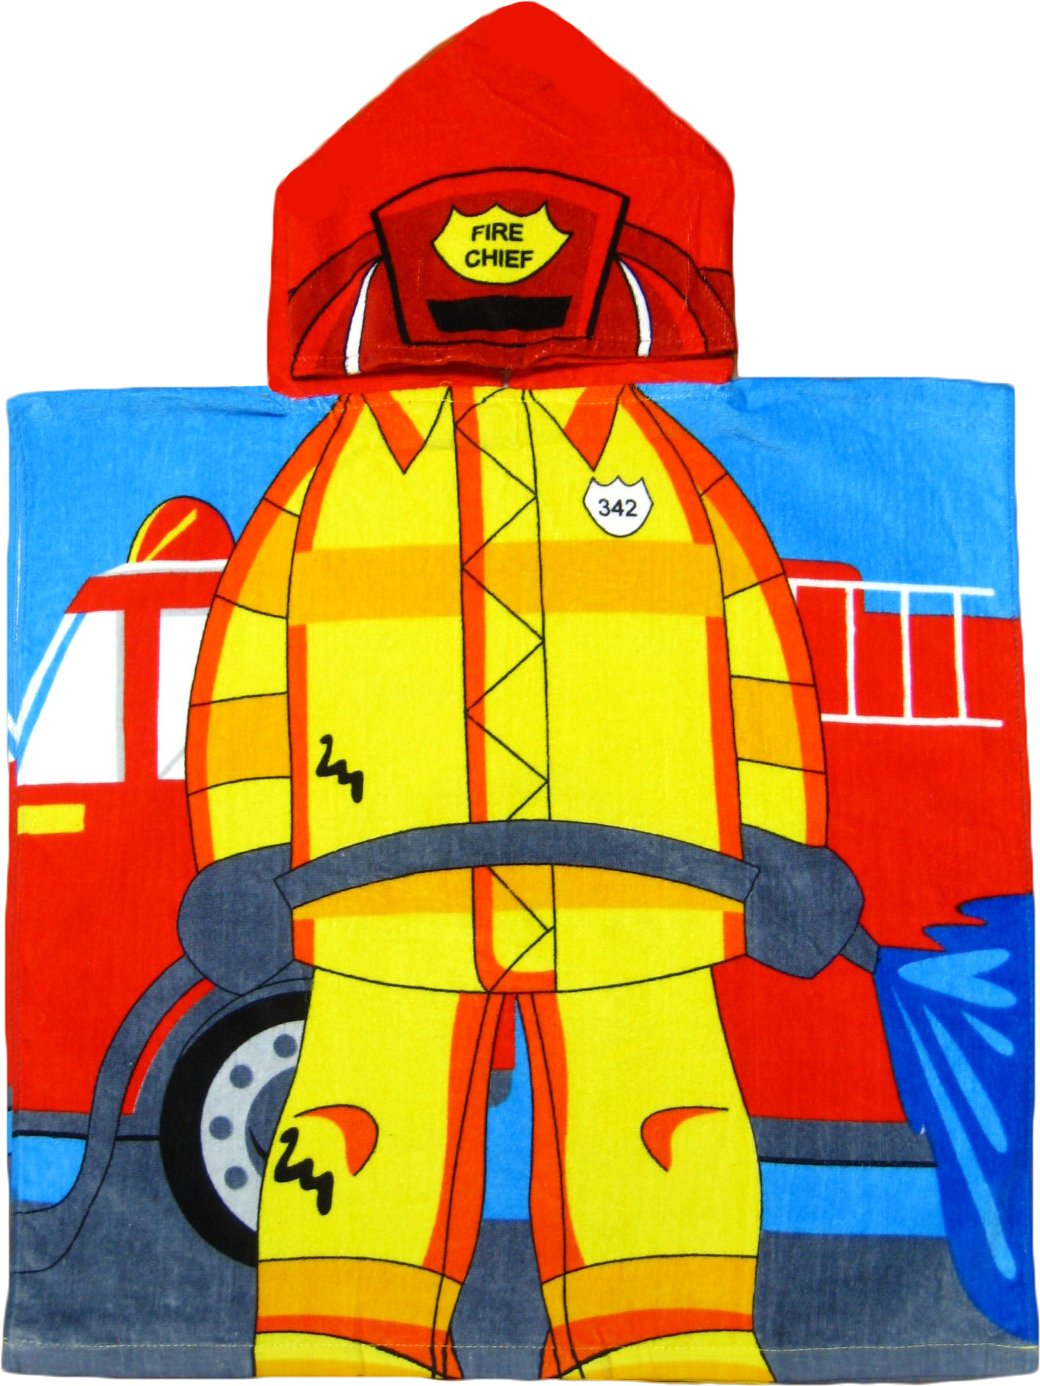 Fireman 100% Cotton Poncho Style Hooded Bath & Beach Towel with Colorful Double Sized Design